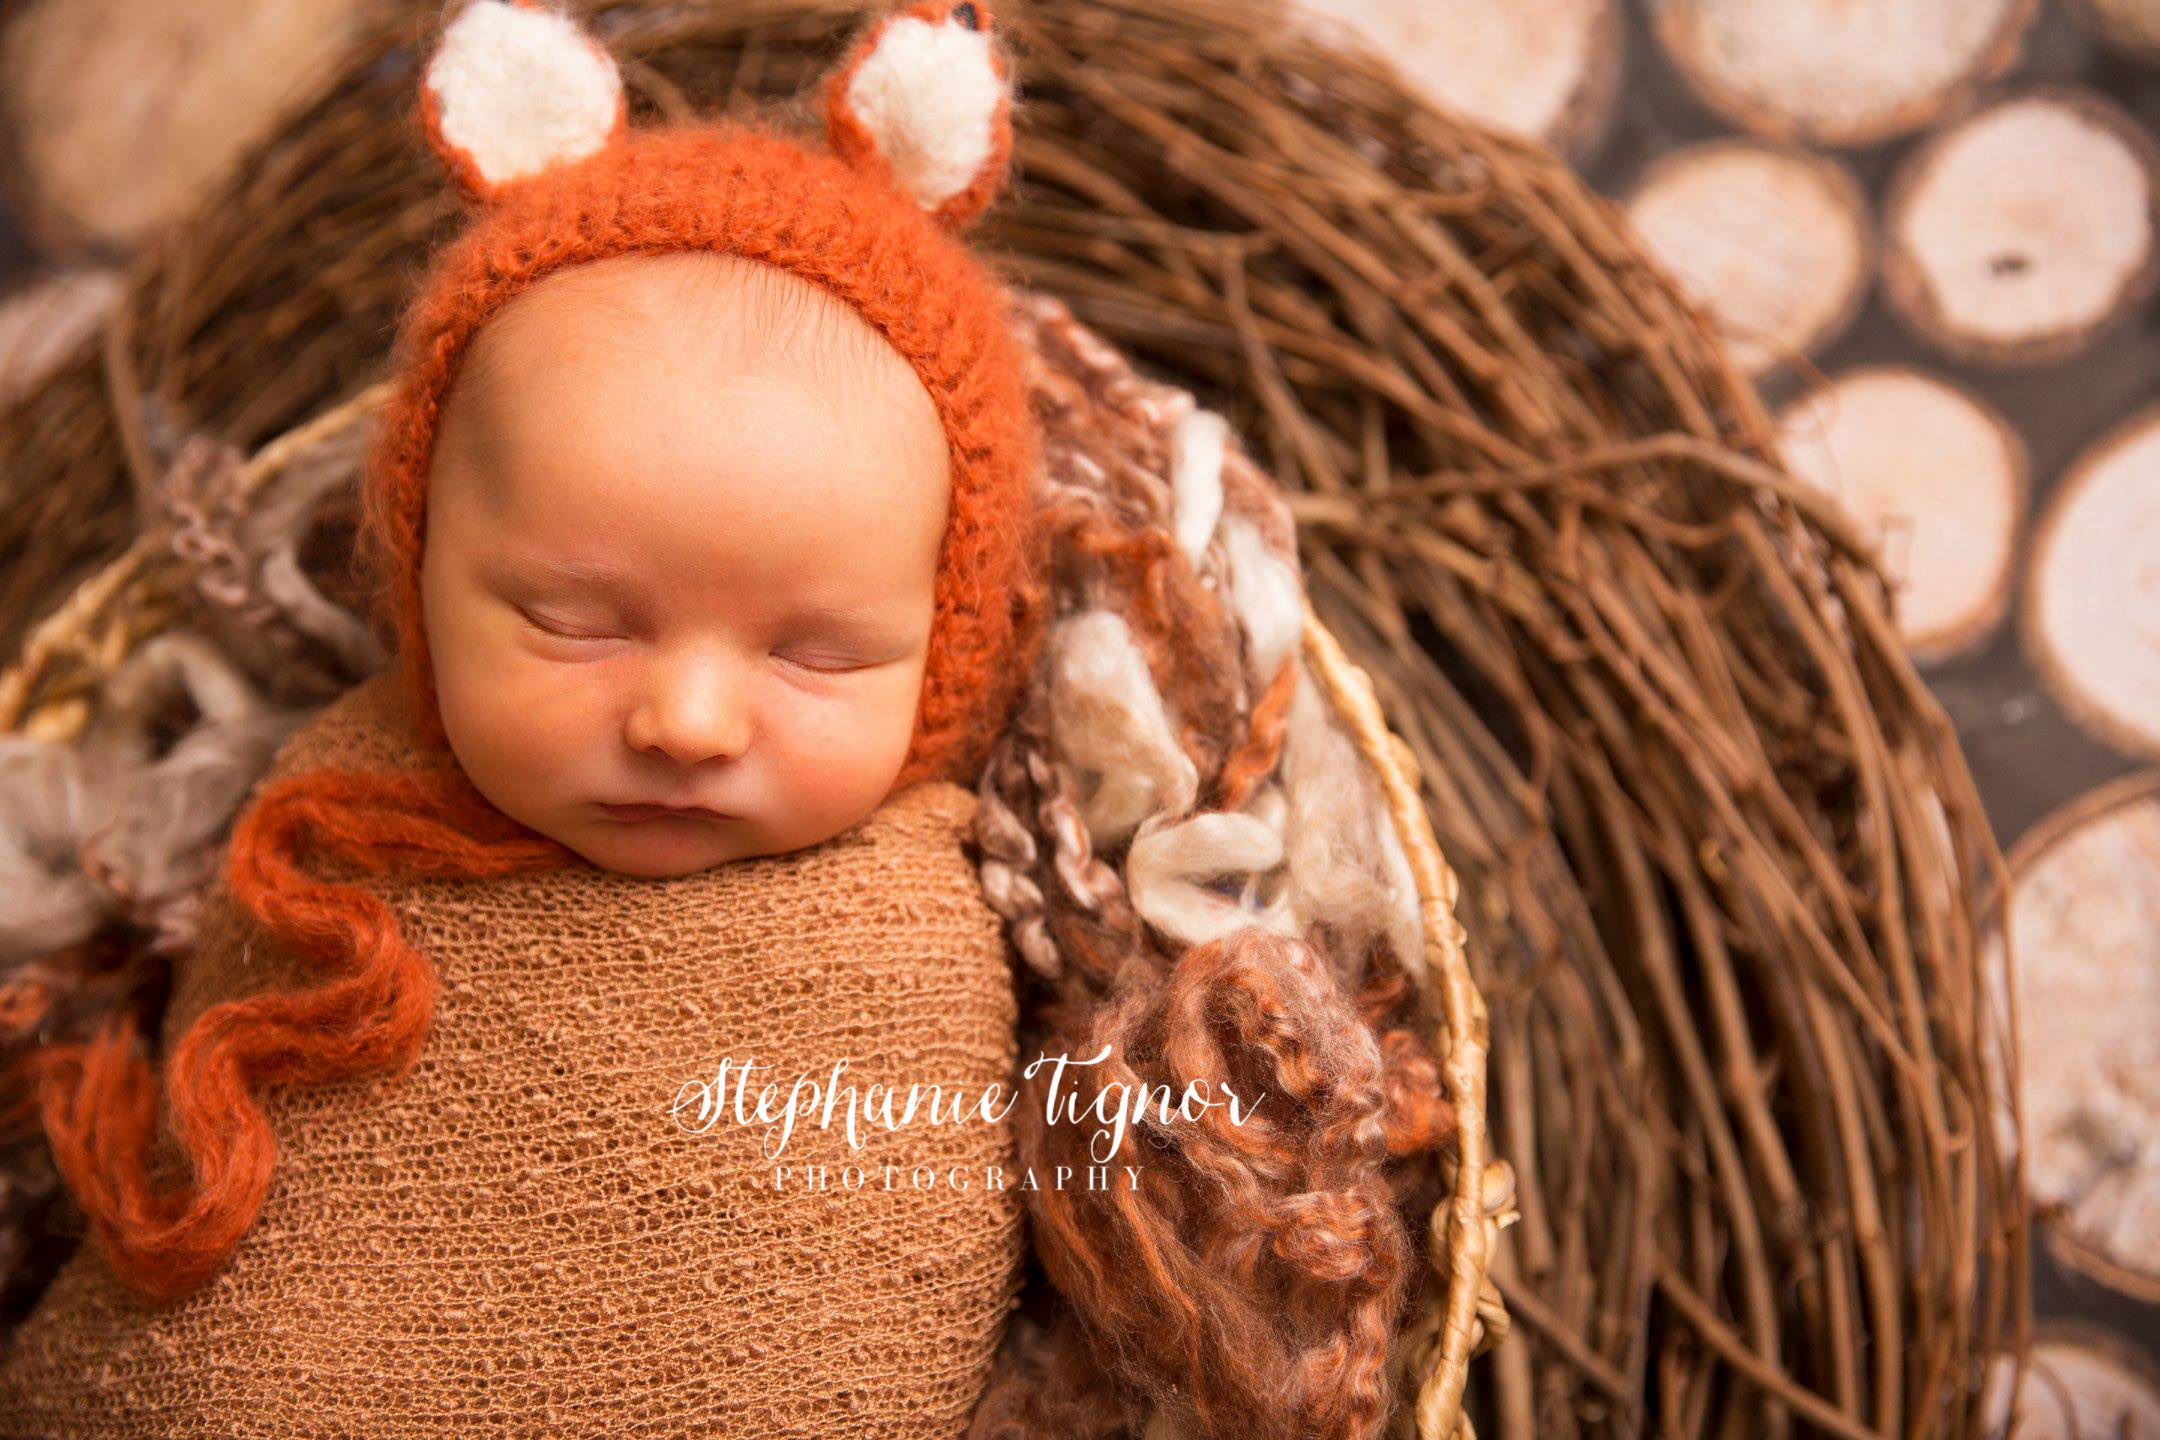 Stephanie Tignor Photography | VA Newborn Photographer, Newborn photographer, DC newborn photographer, Fredericksburg VA newborn photographer, Spotsylvania Newborn photographer, Warrenton VA newborn photographer, NOVA newborn photographer, fall newborn portraits